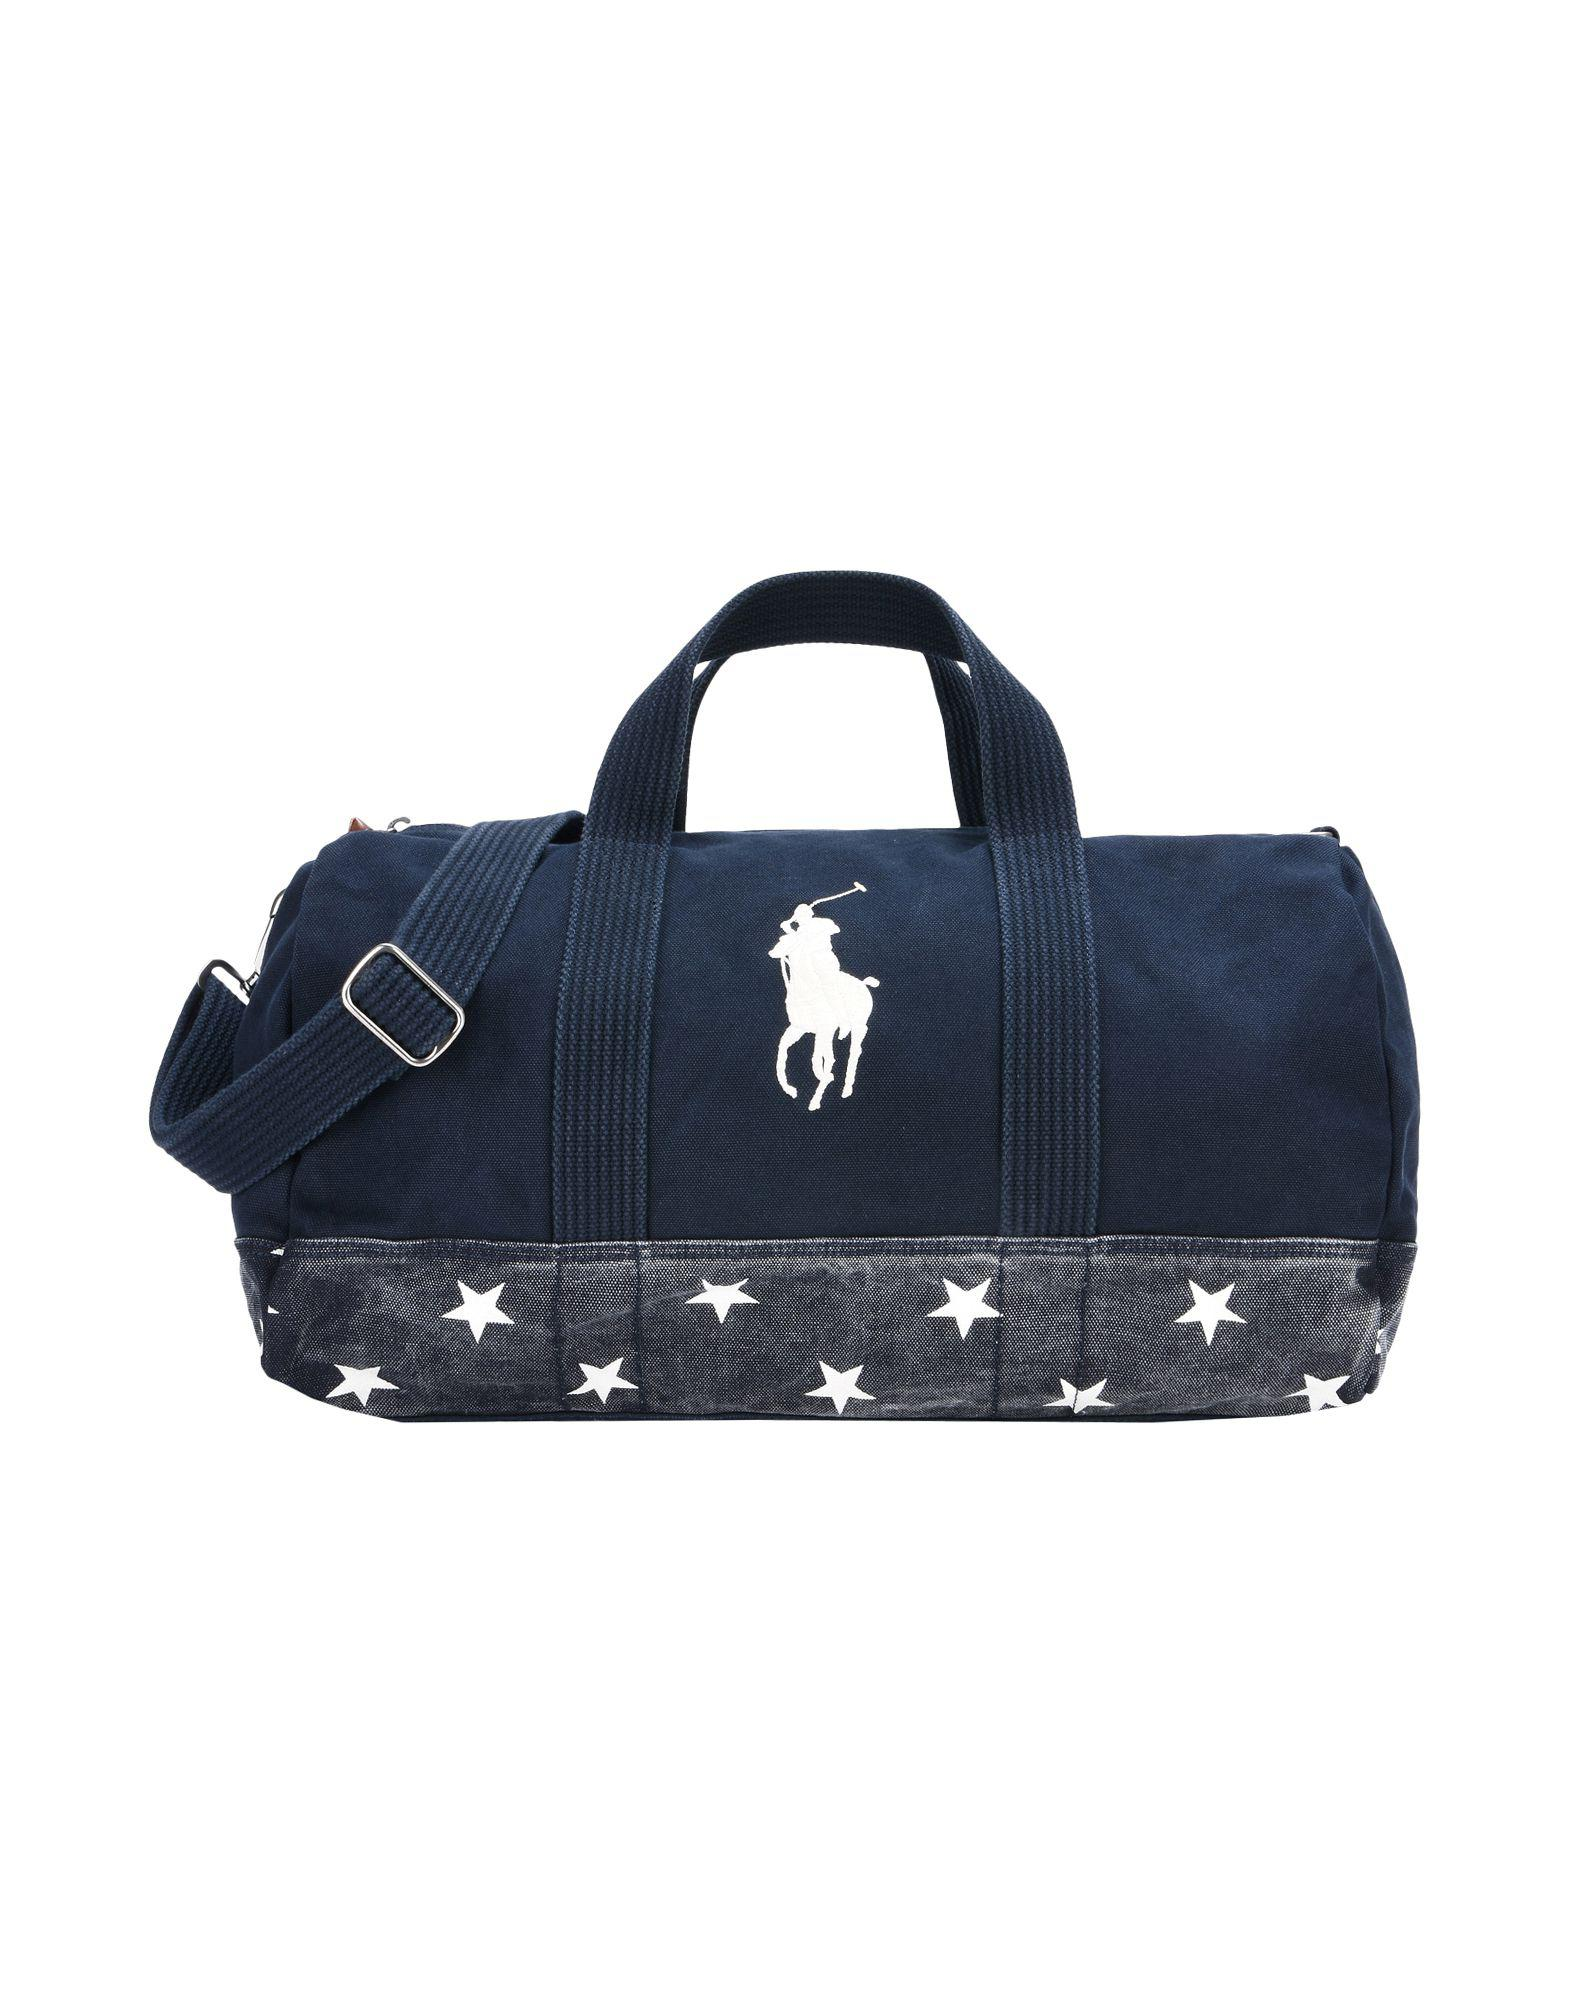 24a90fe4597 Polo Ralph Lauren Luggage in Blue for Men - Lyst